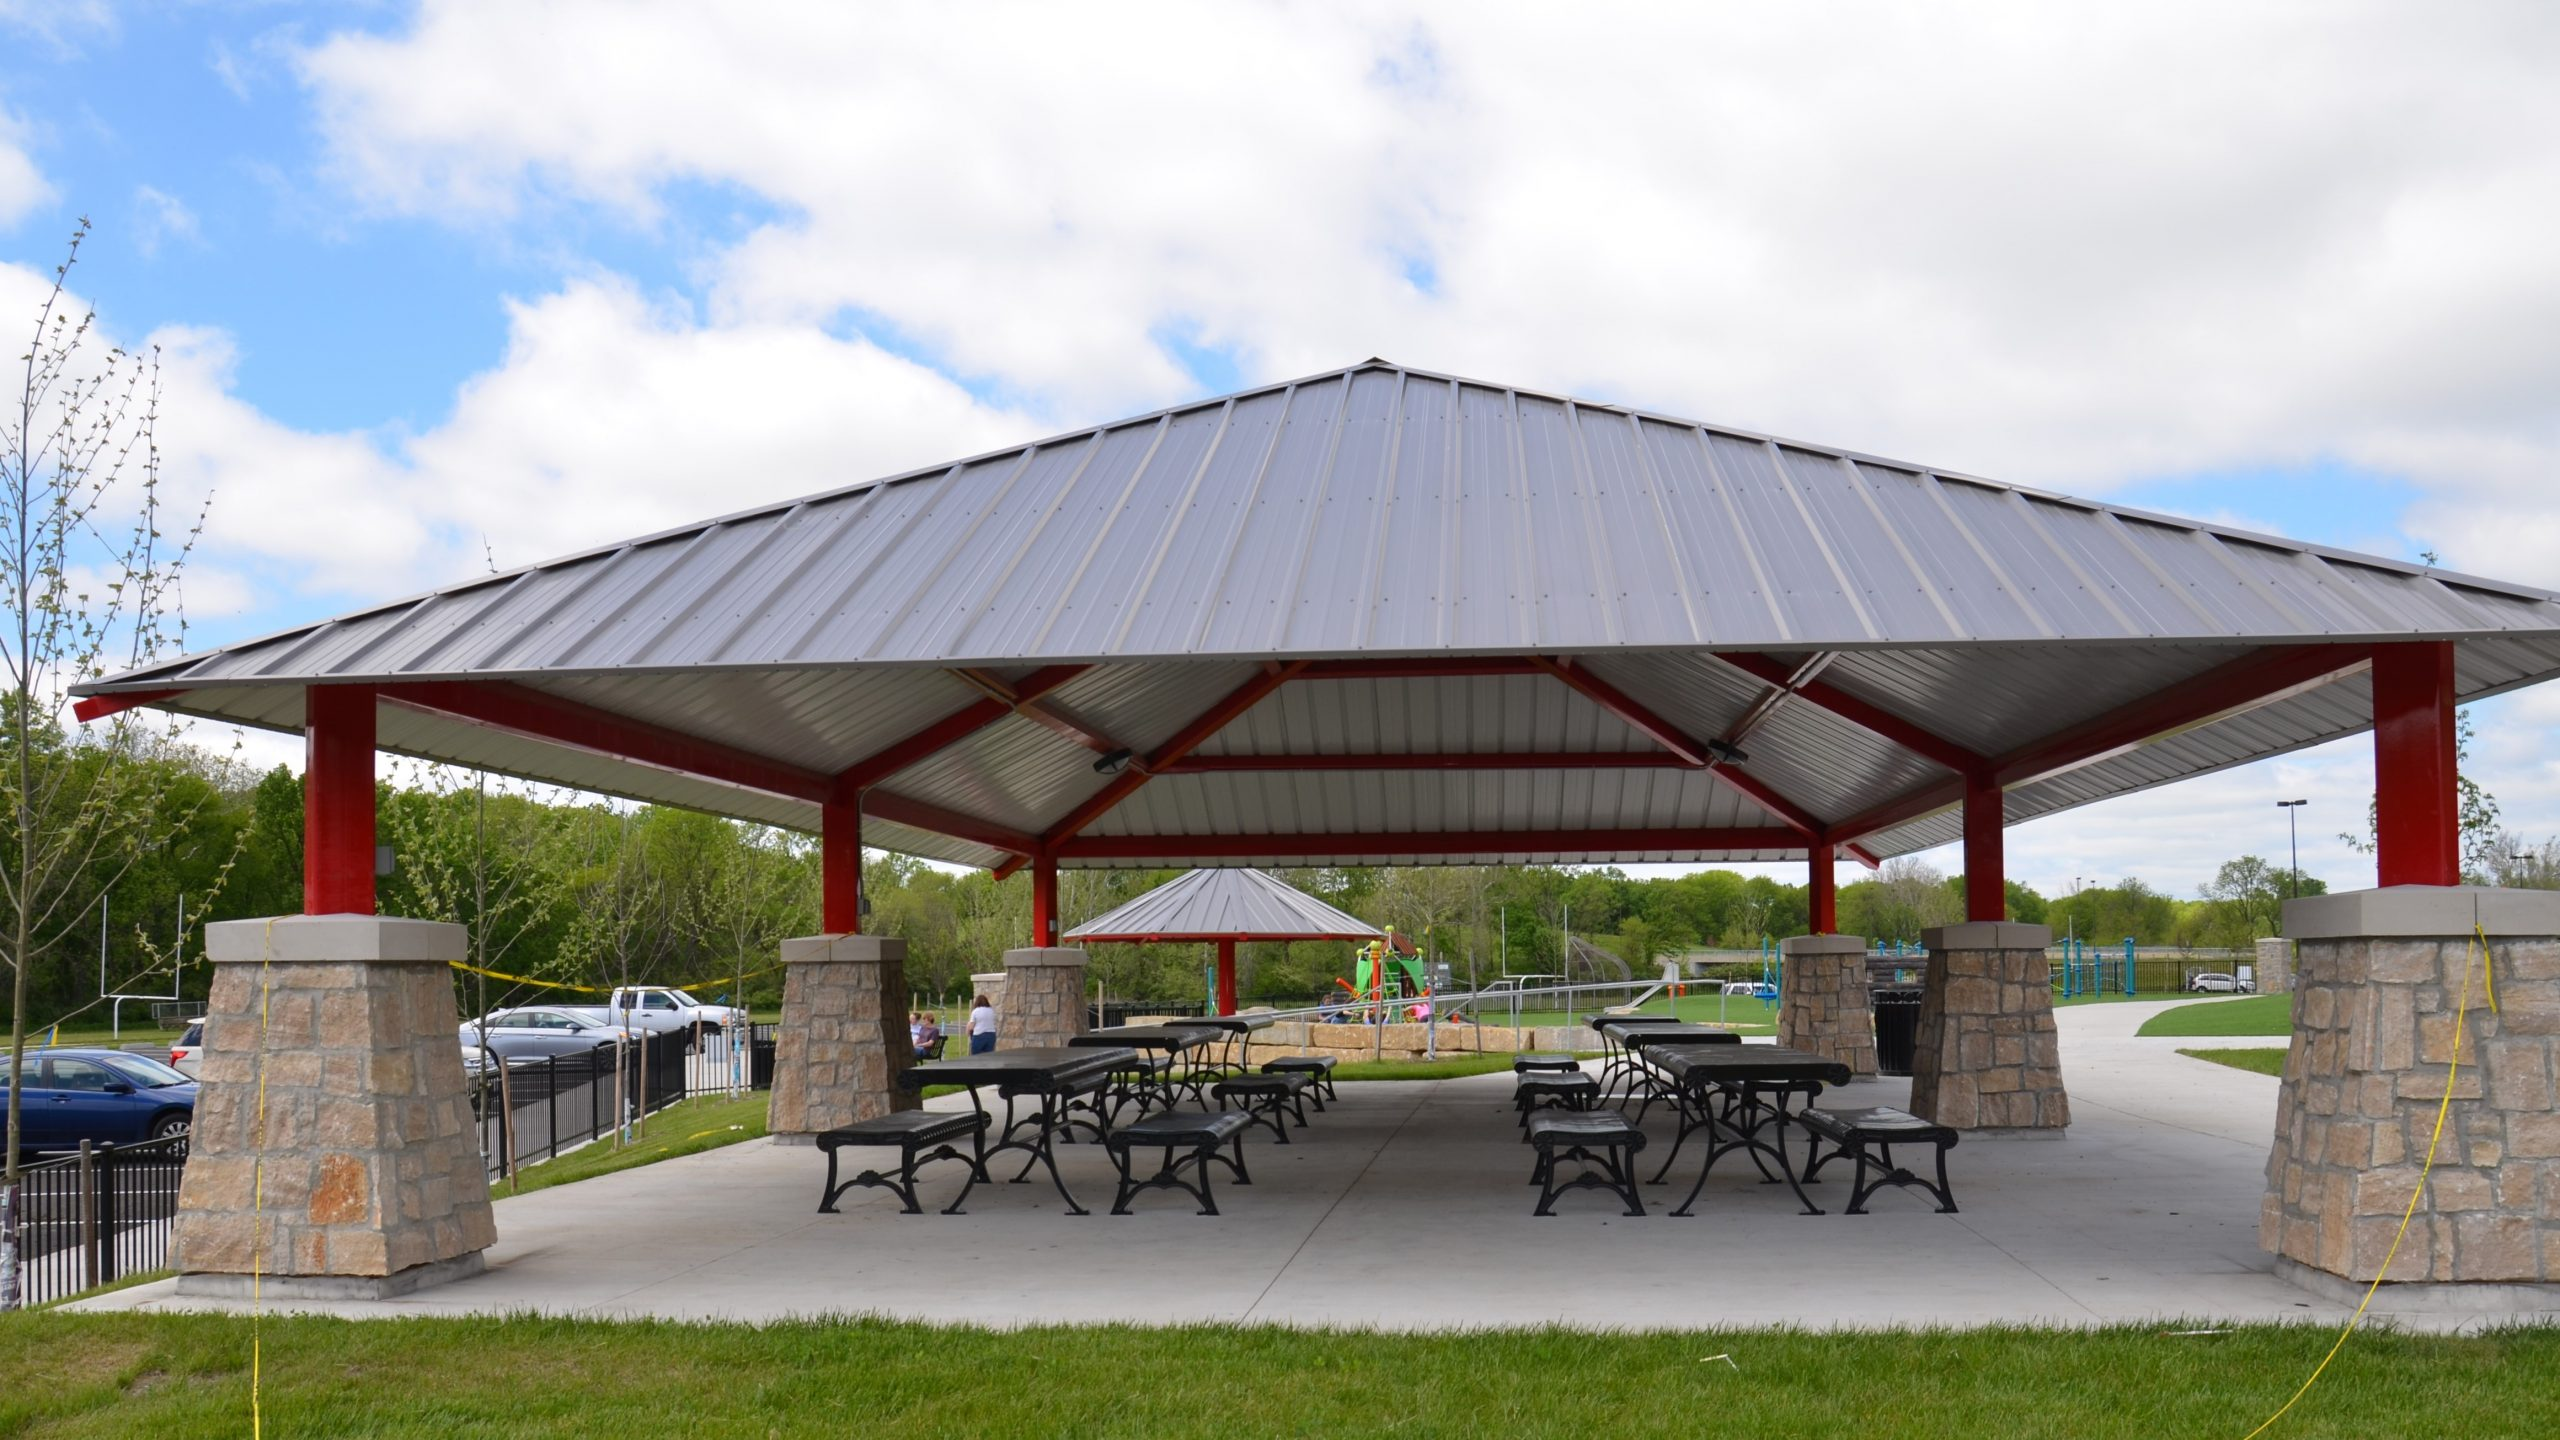 North Hodge Park Shelter (RESERVABLE FROM MAY 1-OCTOBER 31)